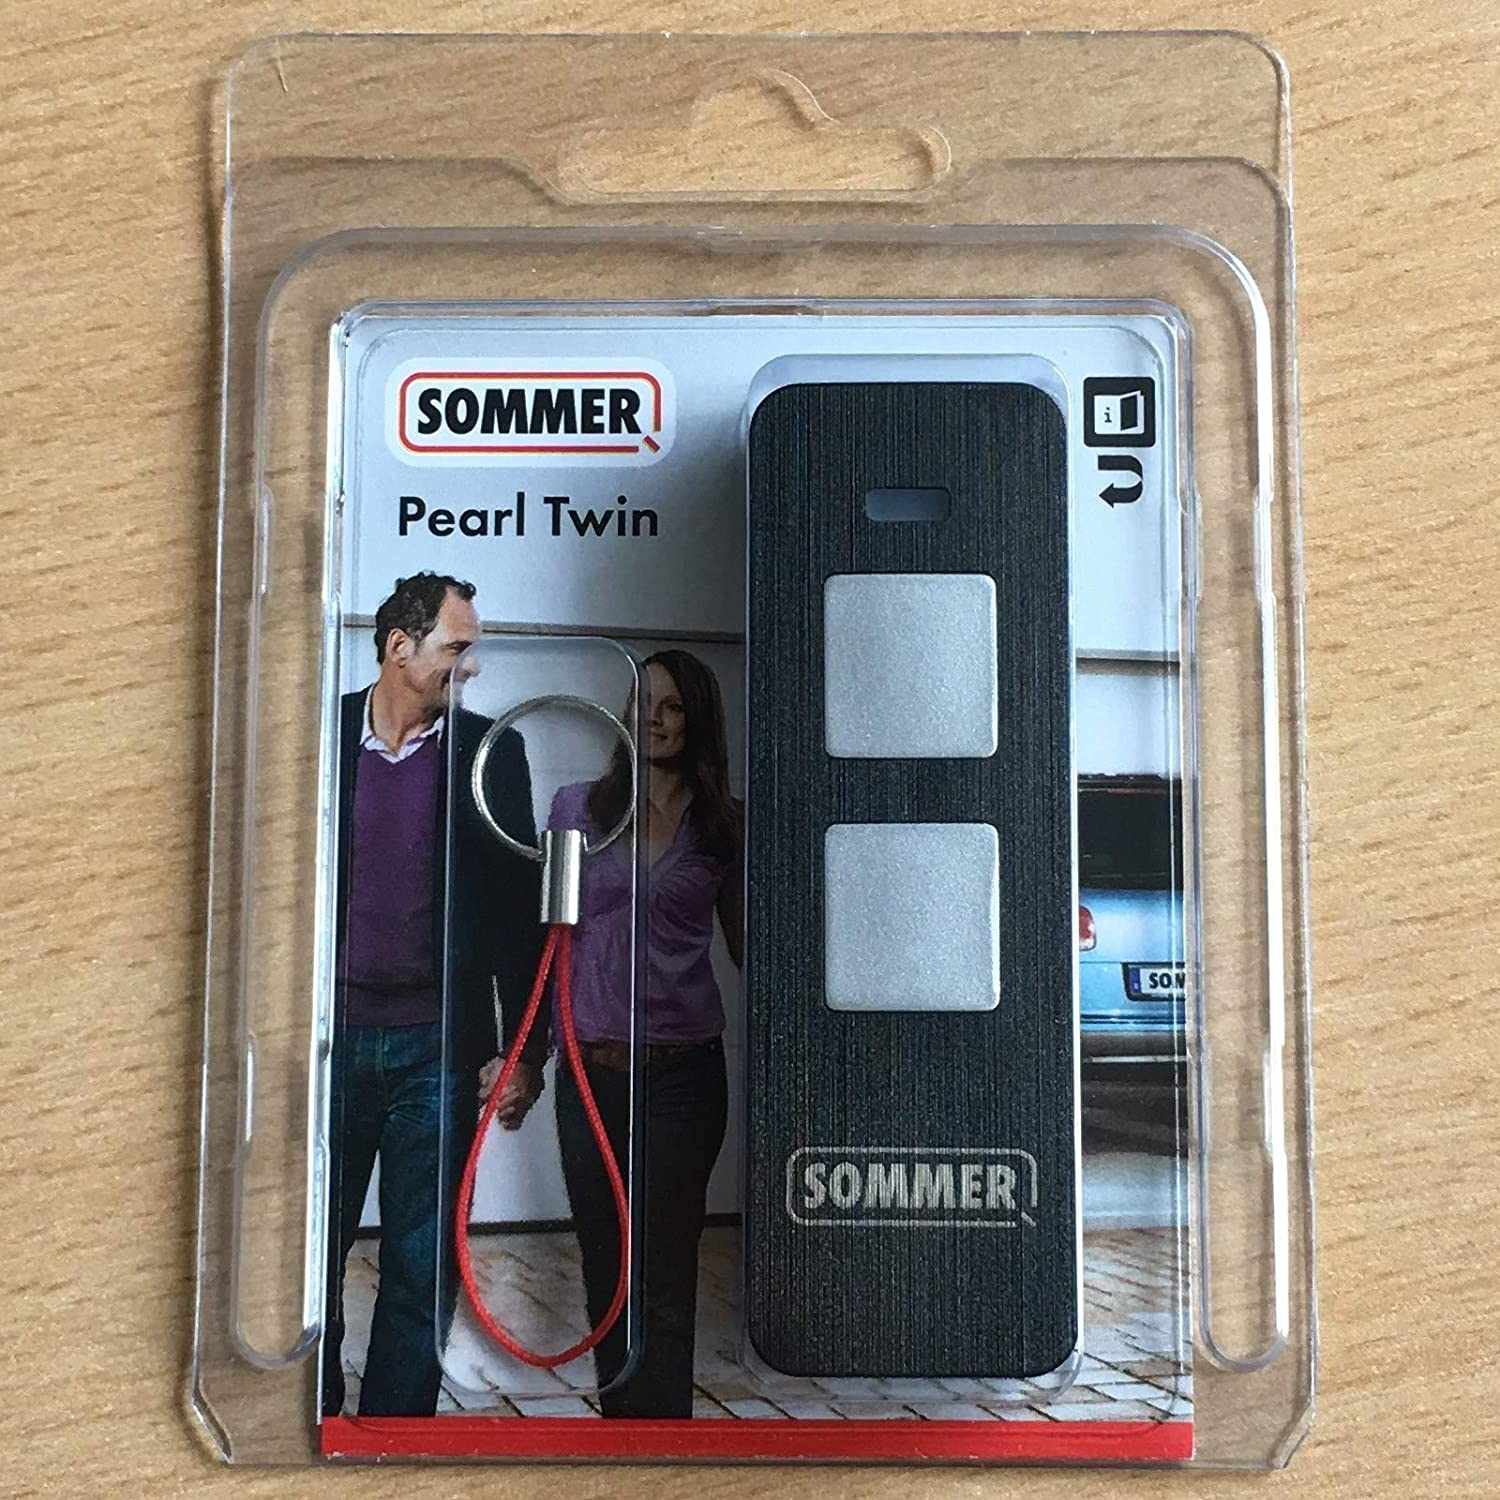 Sommer 2-Command Transmitter Pearl Twin S10019-00001